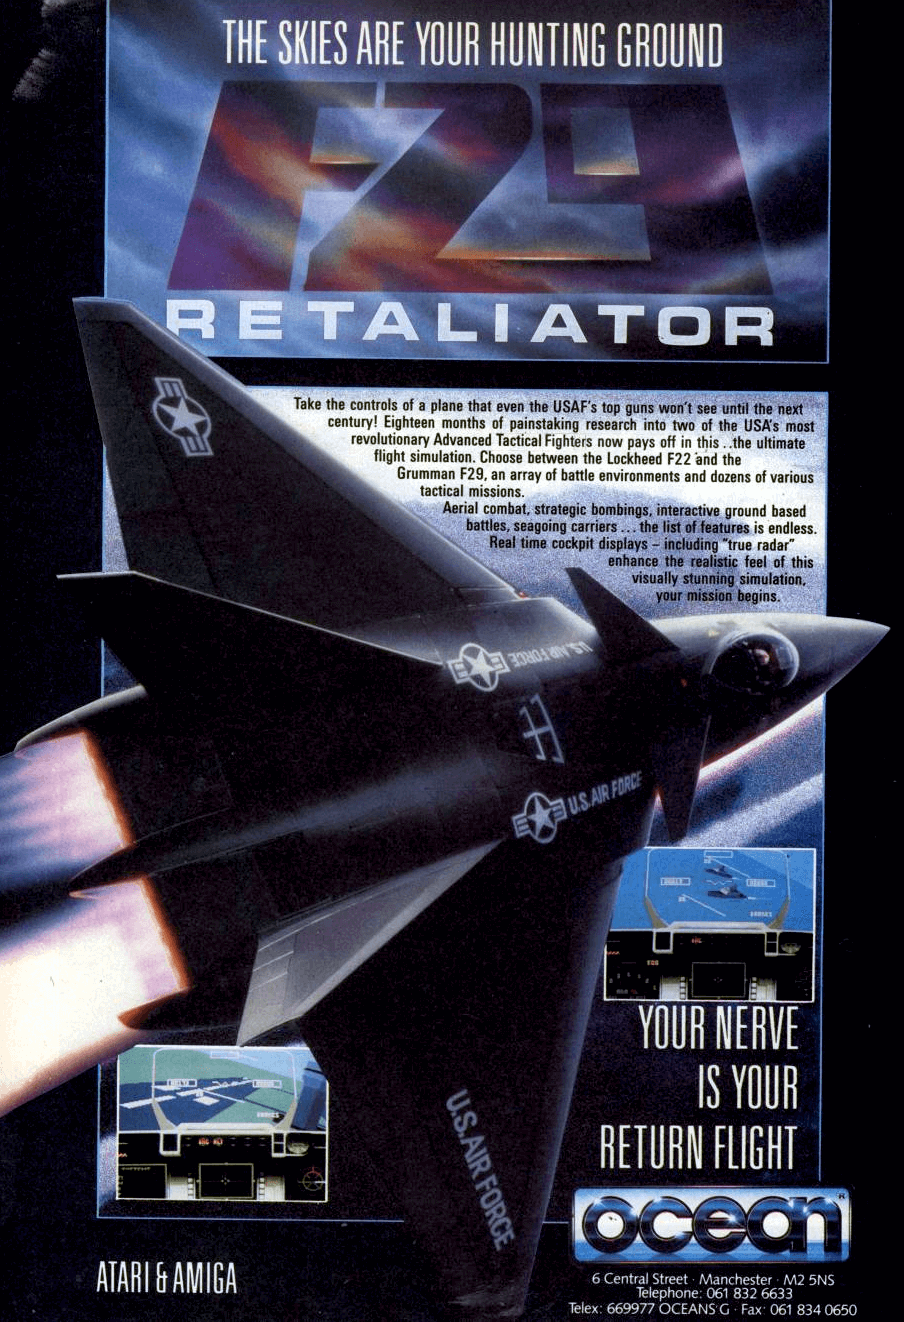 """Image For Post   **Description**   The title is a combat flight simulator that puts you in the cockpit of either the F-22 or the fictional F-29.  The game includes four war scenarios (Arizona desert test and training sites, Pacific conflict, Middle East conflict and the World War III in Europe) each with several missions, with the total number of those adding up to 99. The last mission of the game can be any of three, and completion of each one leads to different game endings. The PC version allowed head-to head dogfighting using a null modem cable.   The graphics were detailed by the standards of the period, featuring cities, bridges, roads, islands, mountains and moving vehicles. The cockpit of either the F-22 or the X-29A has three multi-function displays available to set up in a number of configurations. The fantastic """"future"""" weapons to choose from include a fighter-carried Tomahawk cruise missile, rearward-firing AIM-9 Sidewinder air-to-air missiles and a gigantic cluster bomb.  **Trivia**   The game was developed during the end of the Cold War, based mostly on speculations on then-future aircraft that were expected to be in use by the year 2002, in particular based on the design of the Lockheed Martin F-22 and the Grumman X-29A.  **Bugs**   This game is widely regarded as being quite bugged. One amusing example I'm aware of is that, even after you eject, you still have control of the plane, so it's actually possible to hit yourself with it.   **F22**   The (real) F22 on the box covers looks nothing like the (fictional) F22 that is actually in the game. Also, contrary to what many believe, the F29 does exist (though not as a fighter), as the X29 experimental aircraft and, in contrast to the above mentioned F22, the F29 and the real X29 look the same.  The Amiga and Atari ST box art, as well as the title screen image in all versions, is based on Lockheed Martin concept art. It's a painting by Syd Mead made in 1988 of the then secret F22 fighter plane, aka the A"""